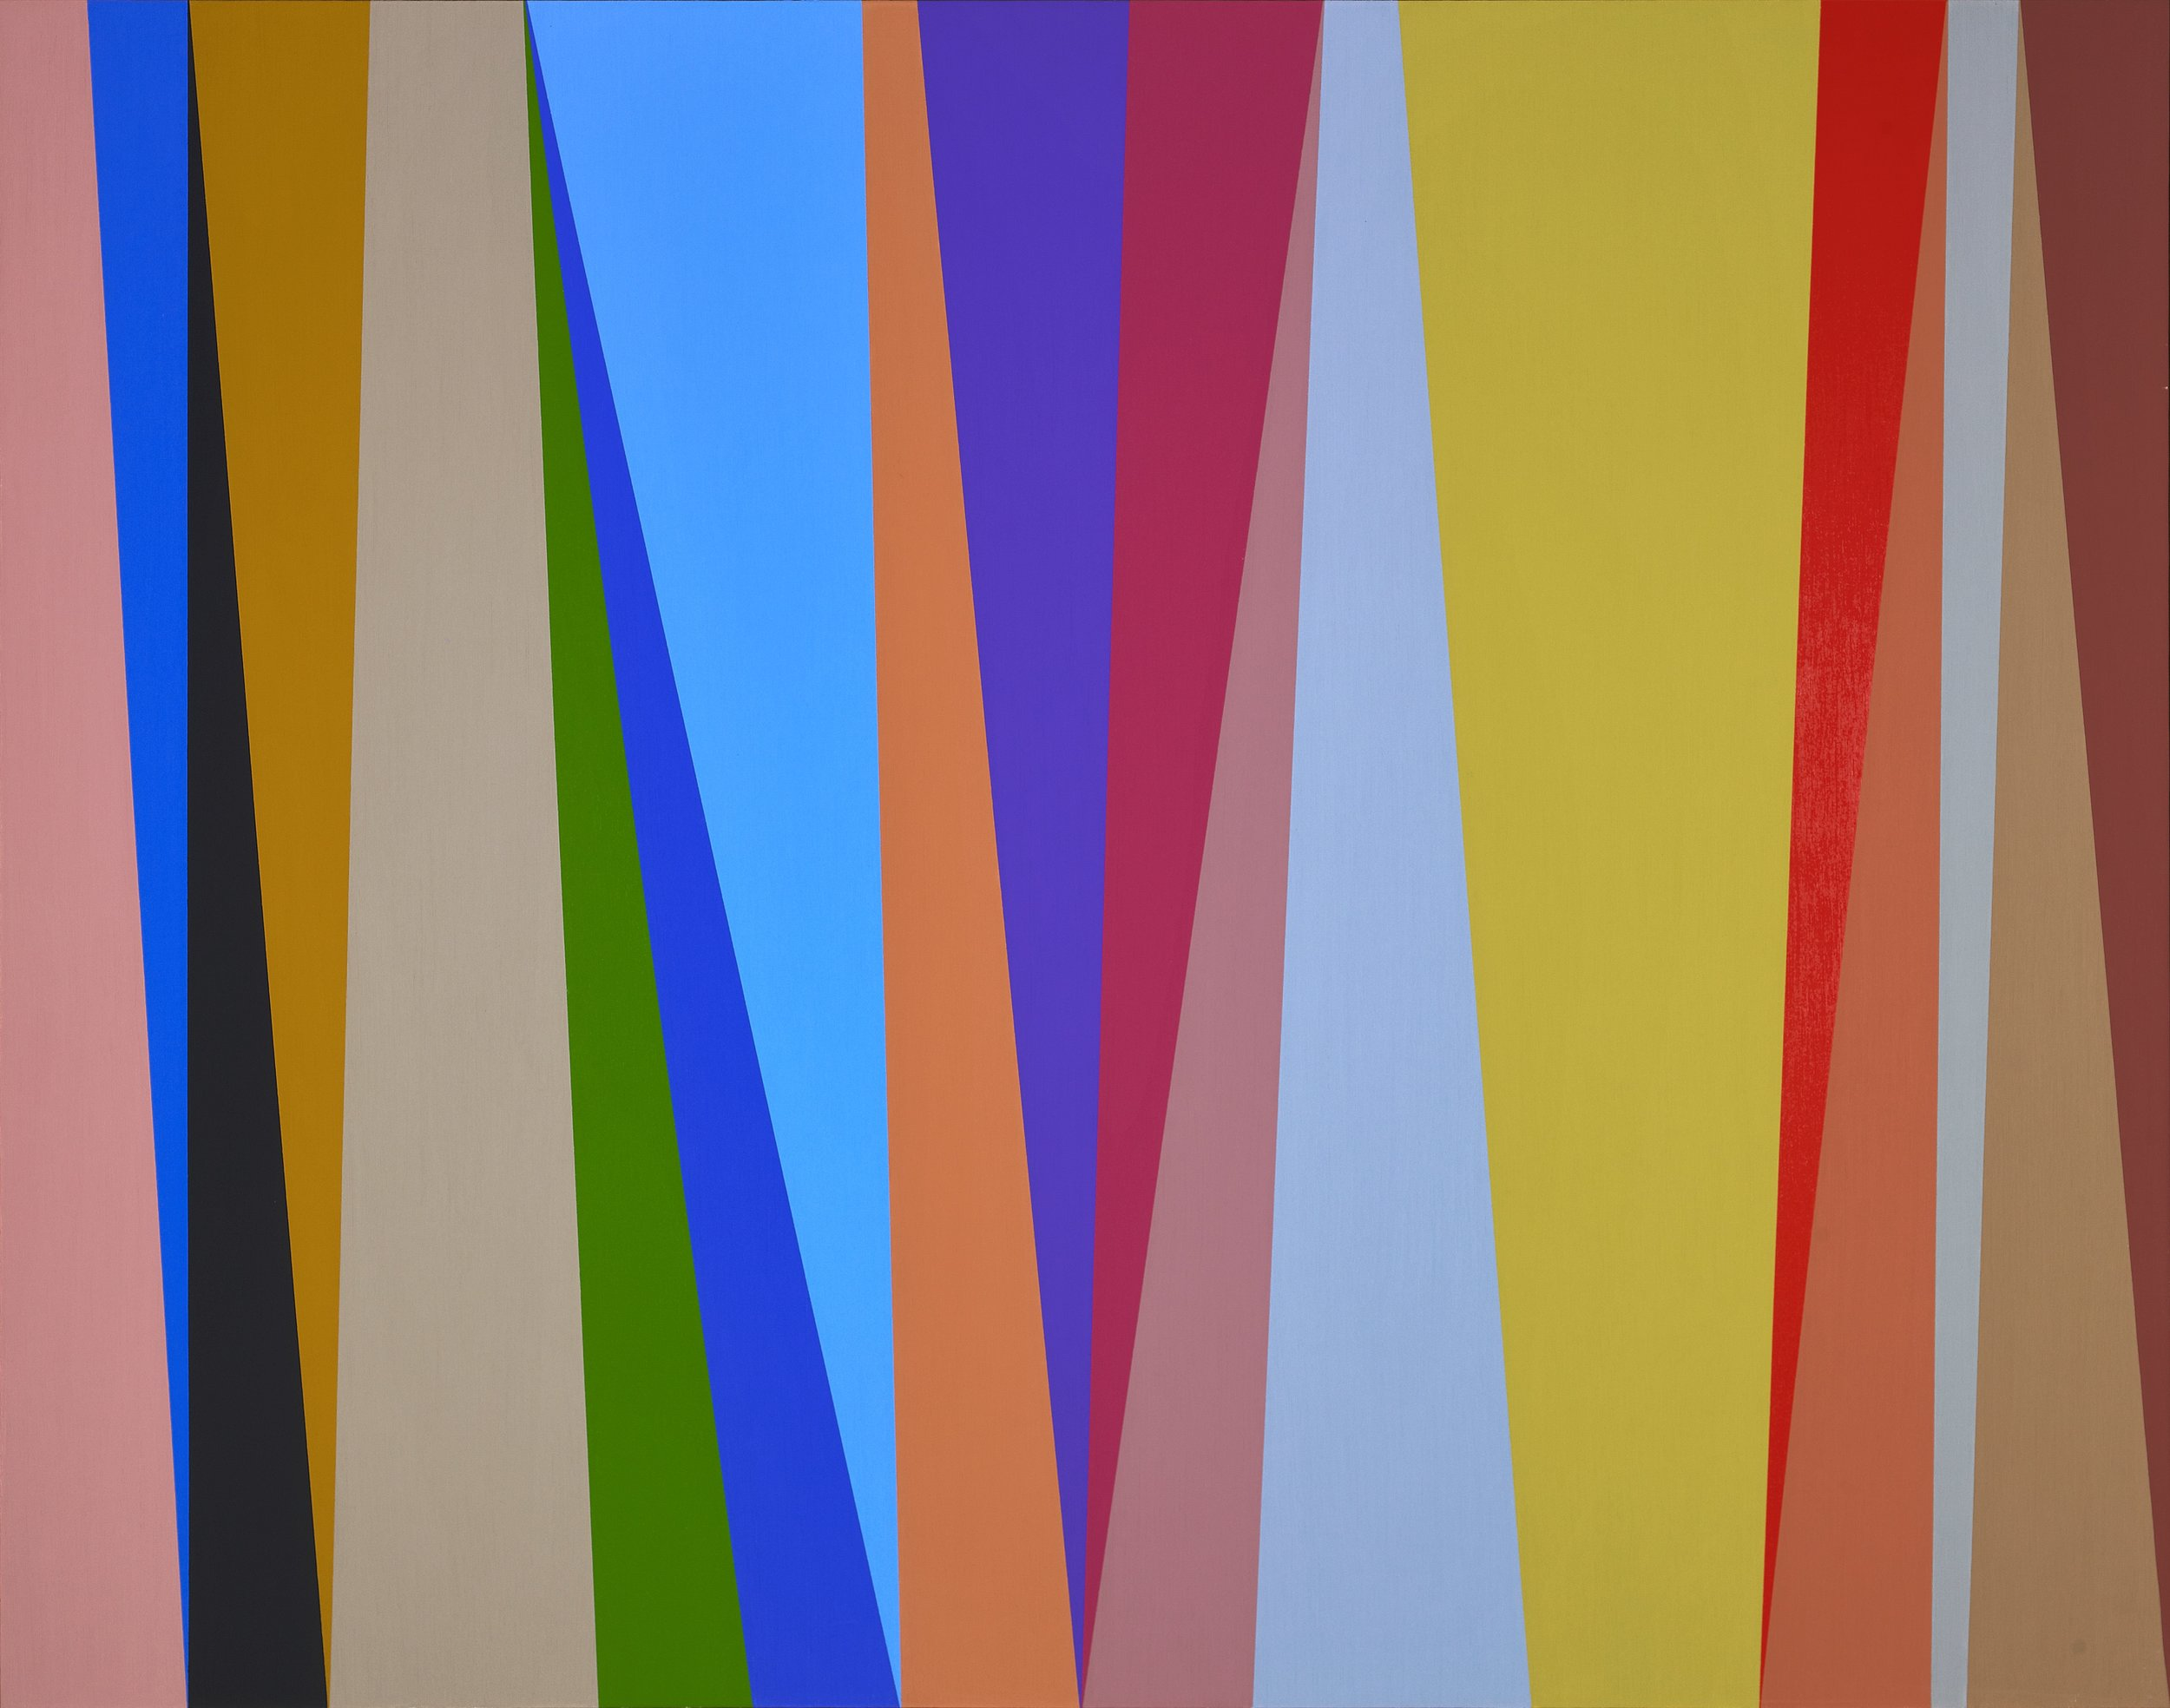 #8 , 1995  oil on canvas 44 x 56 inches; 111.8 x 142.2 centimeters